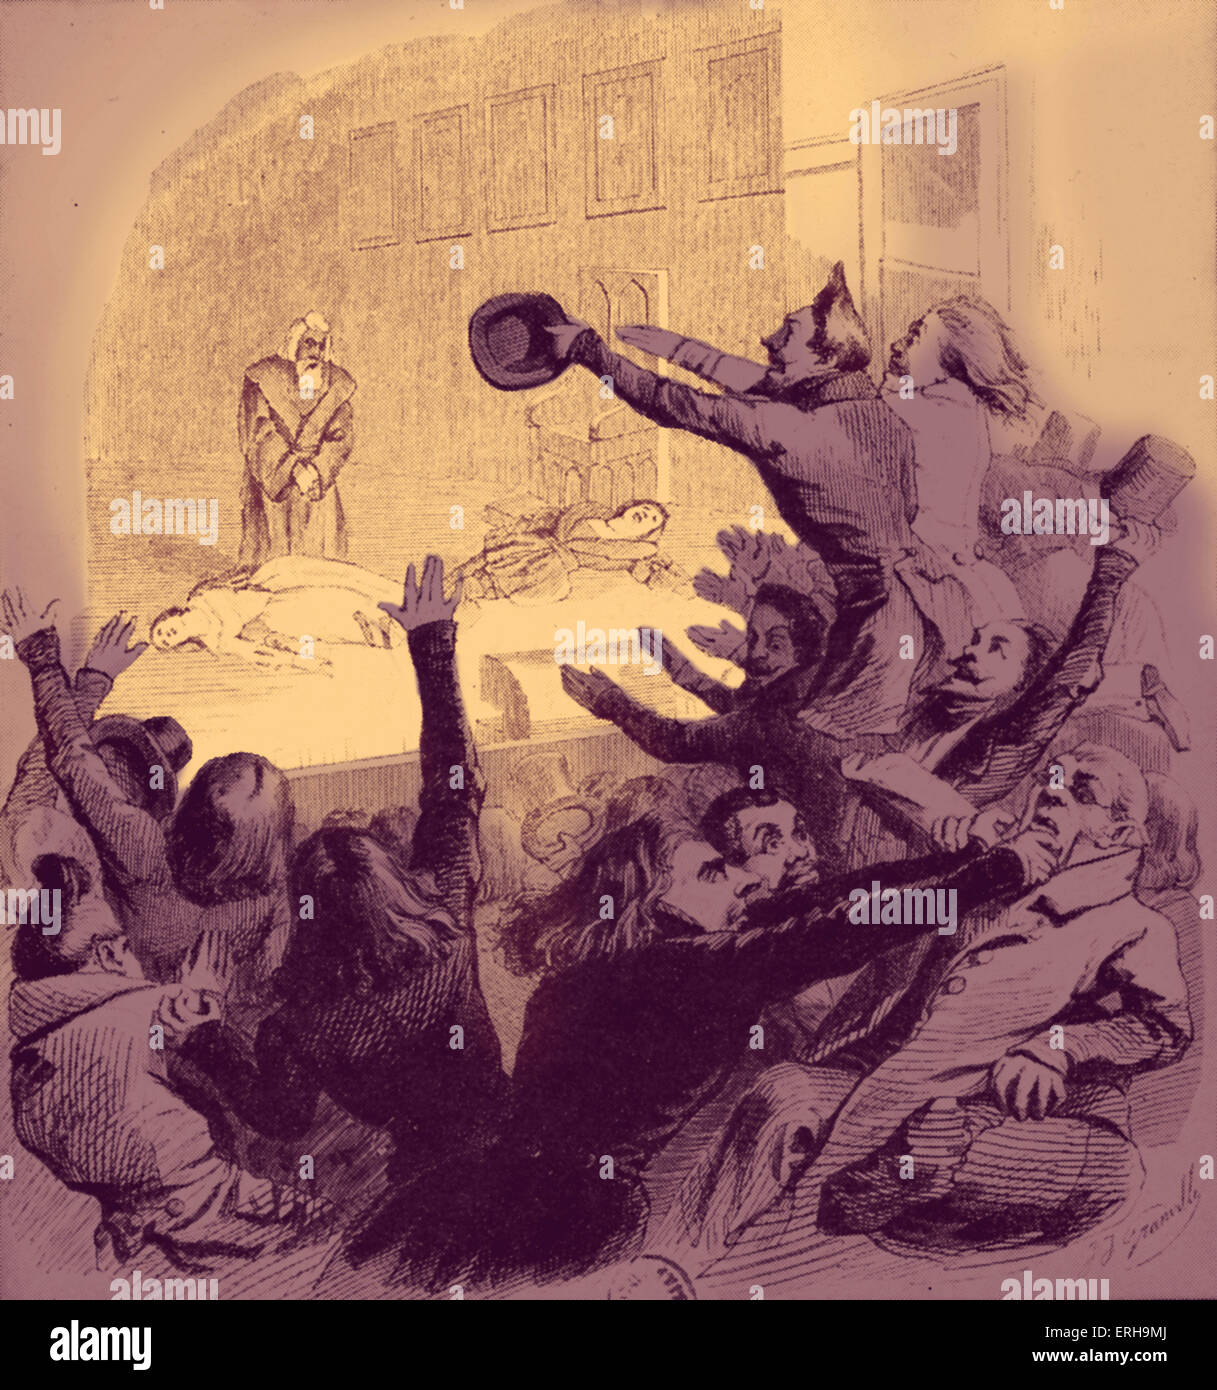 Premiere of  Victor Hugo 's Hernani. Caricature of the time.  Illustration showing the play's chaotic reception - Stock Image